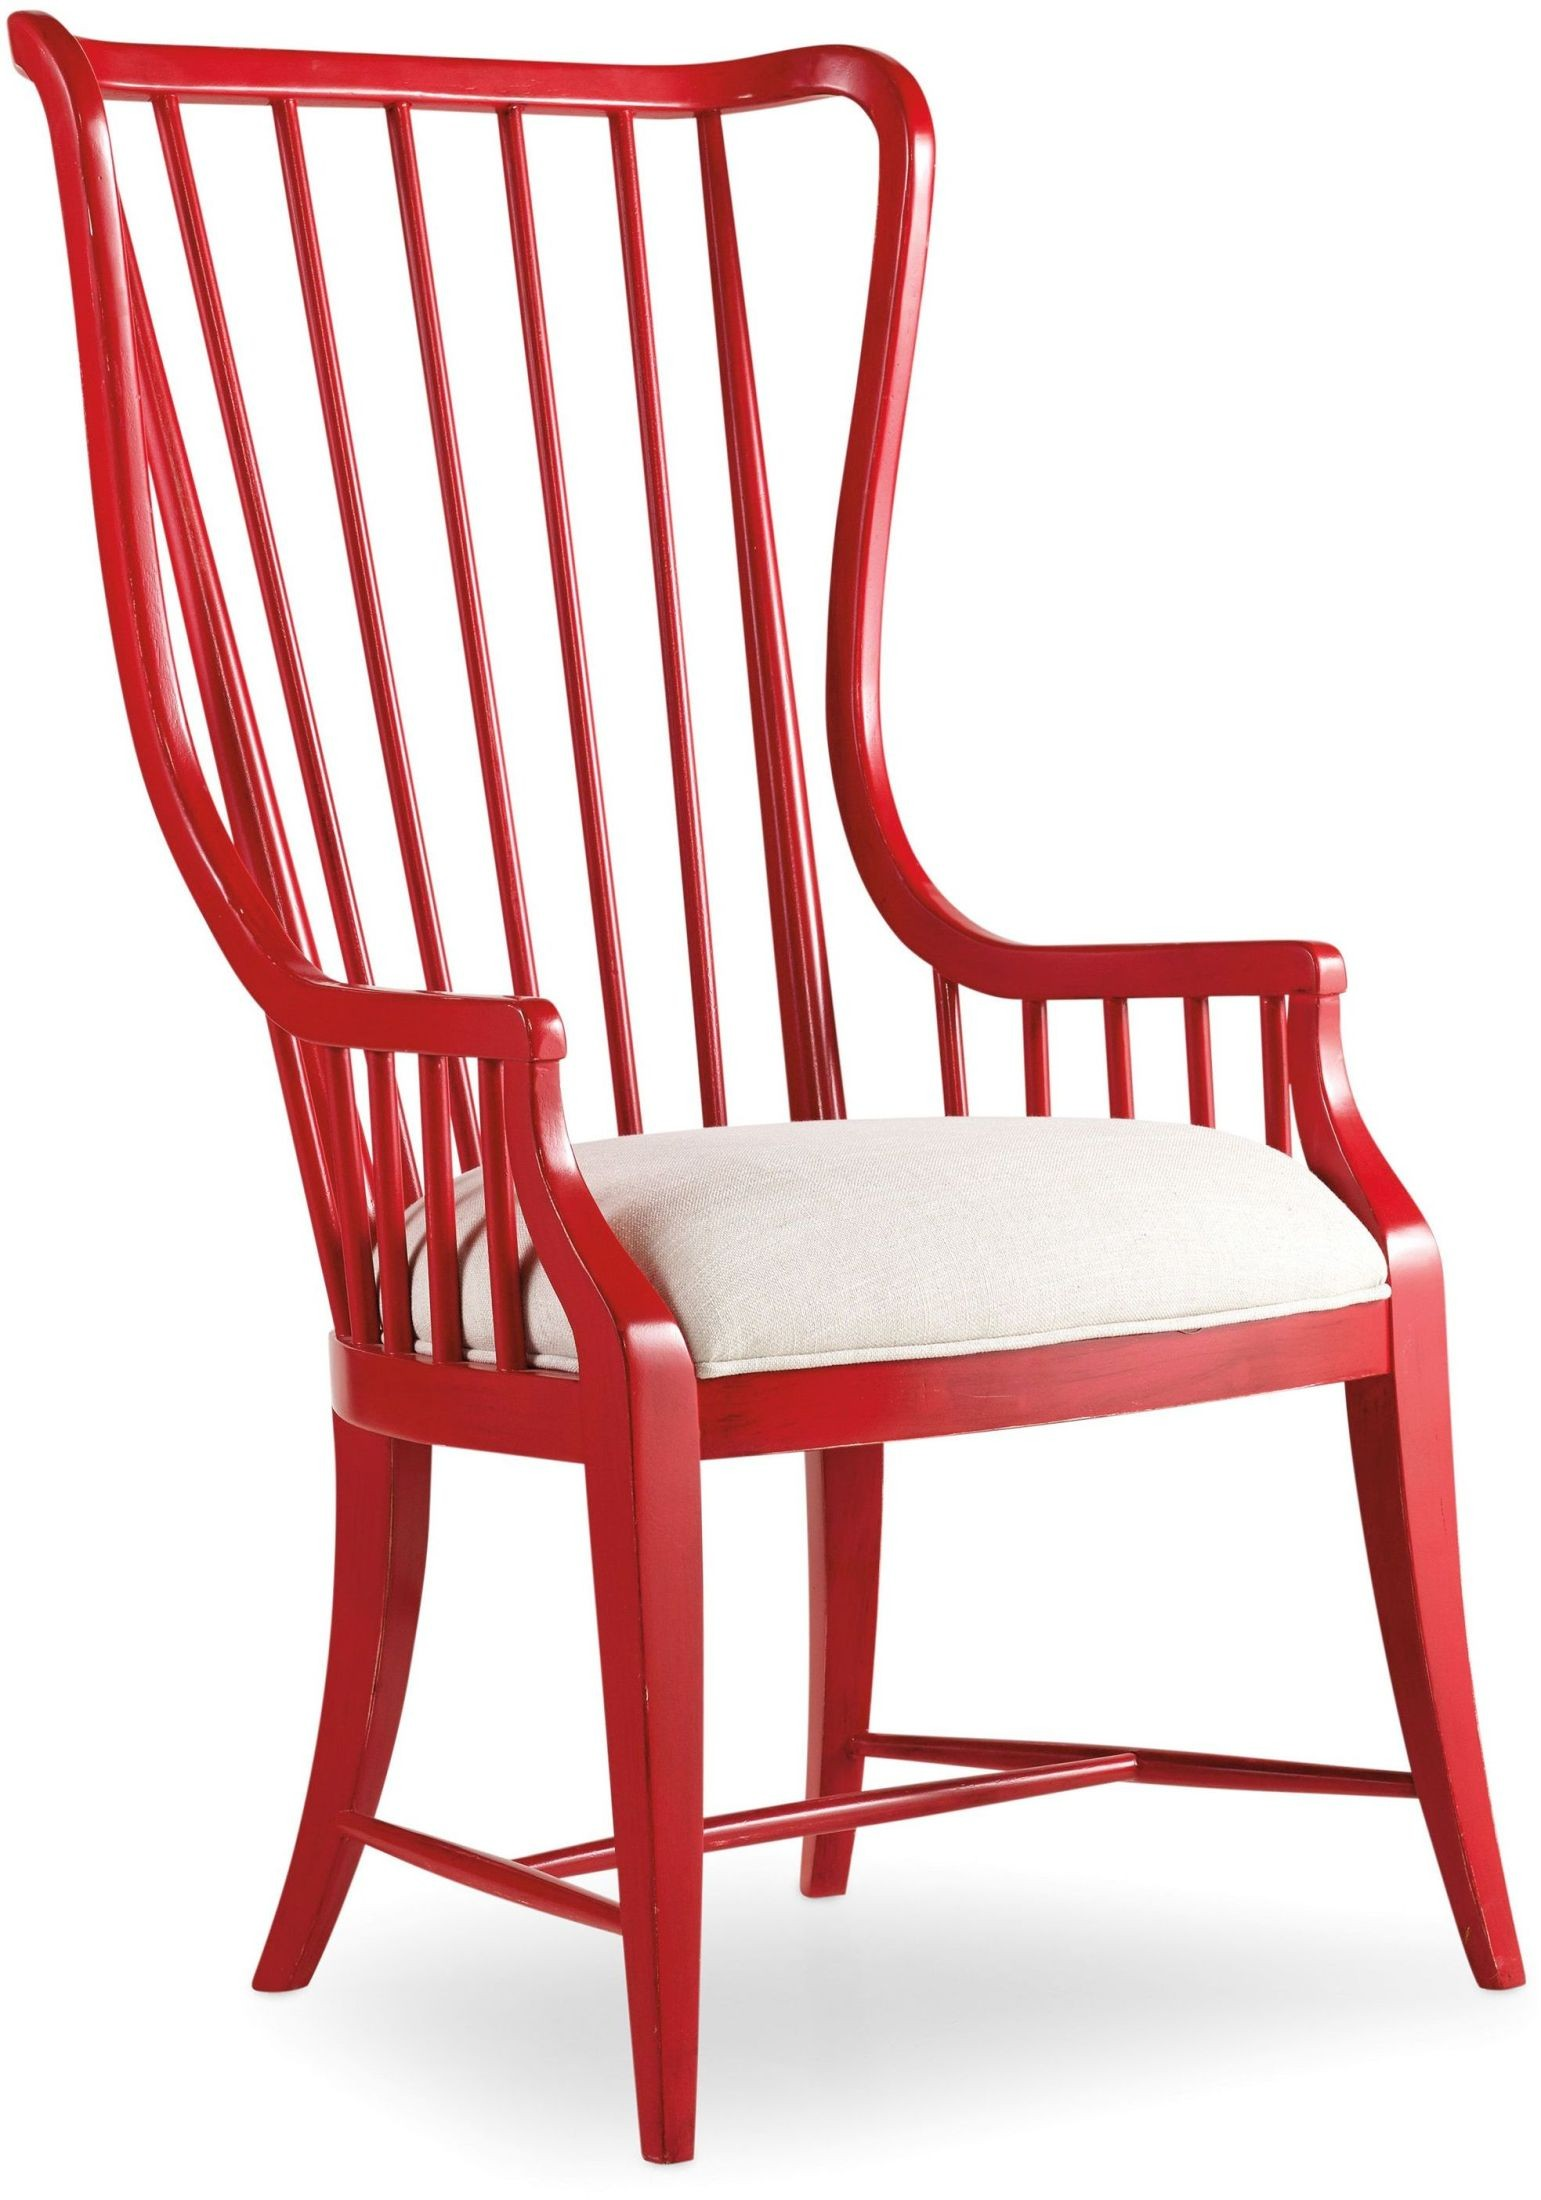 spindle arm chair 4 seater table and chairs sanctuary red tall set of 2 5404 75400